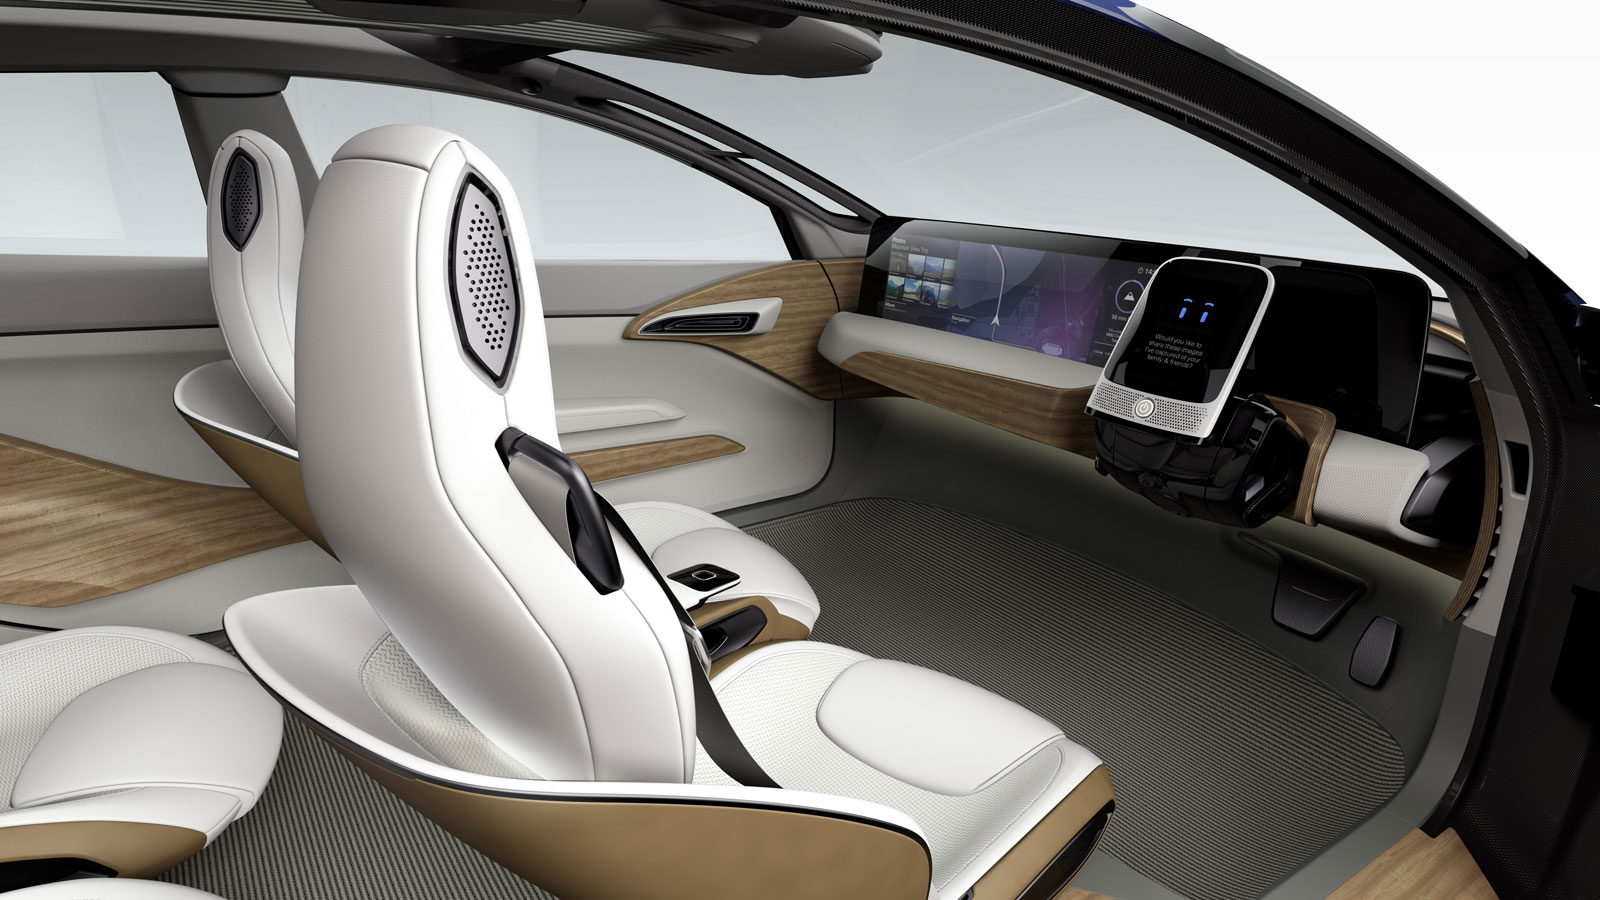 nissan ids concept envisions the future of autonomous evs car body design. Black Bedroom Furniture Sets. Home Design Ideas